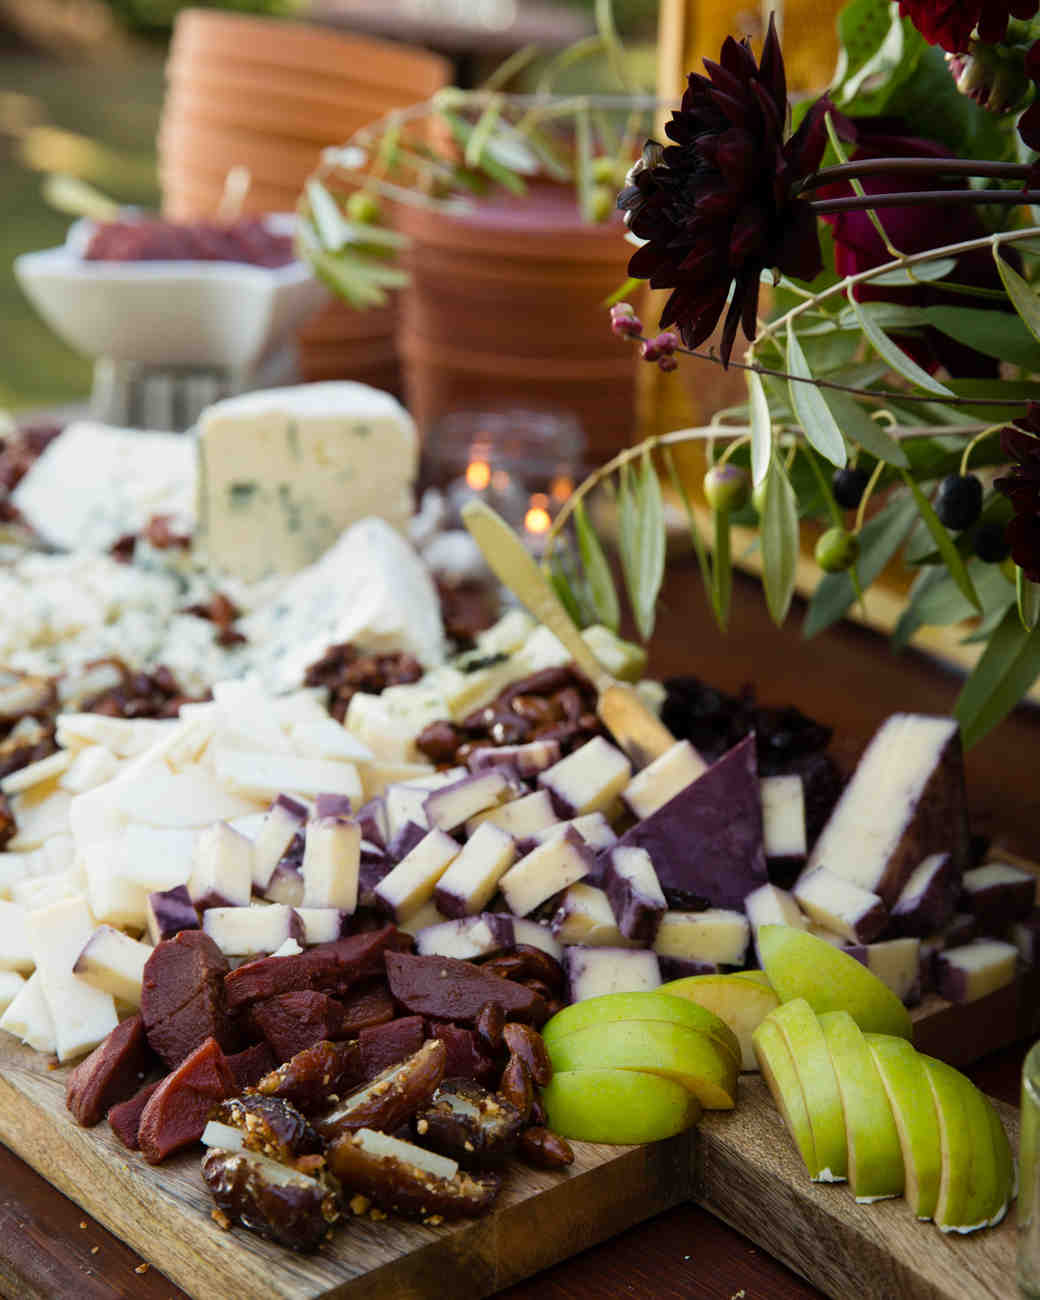 6 Steps For Curating A Delicious Display Of Cheese And